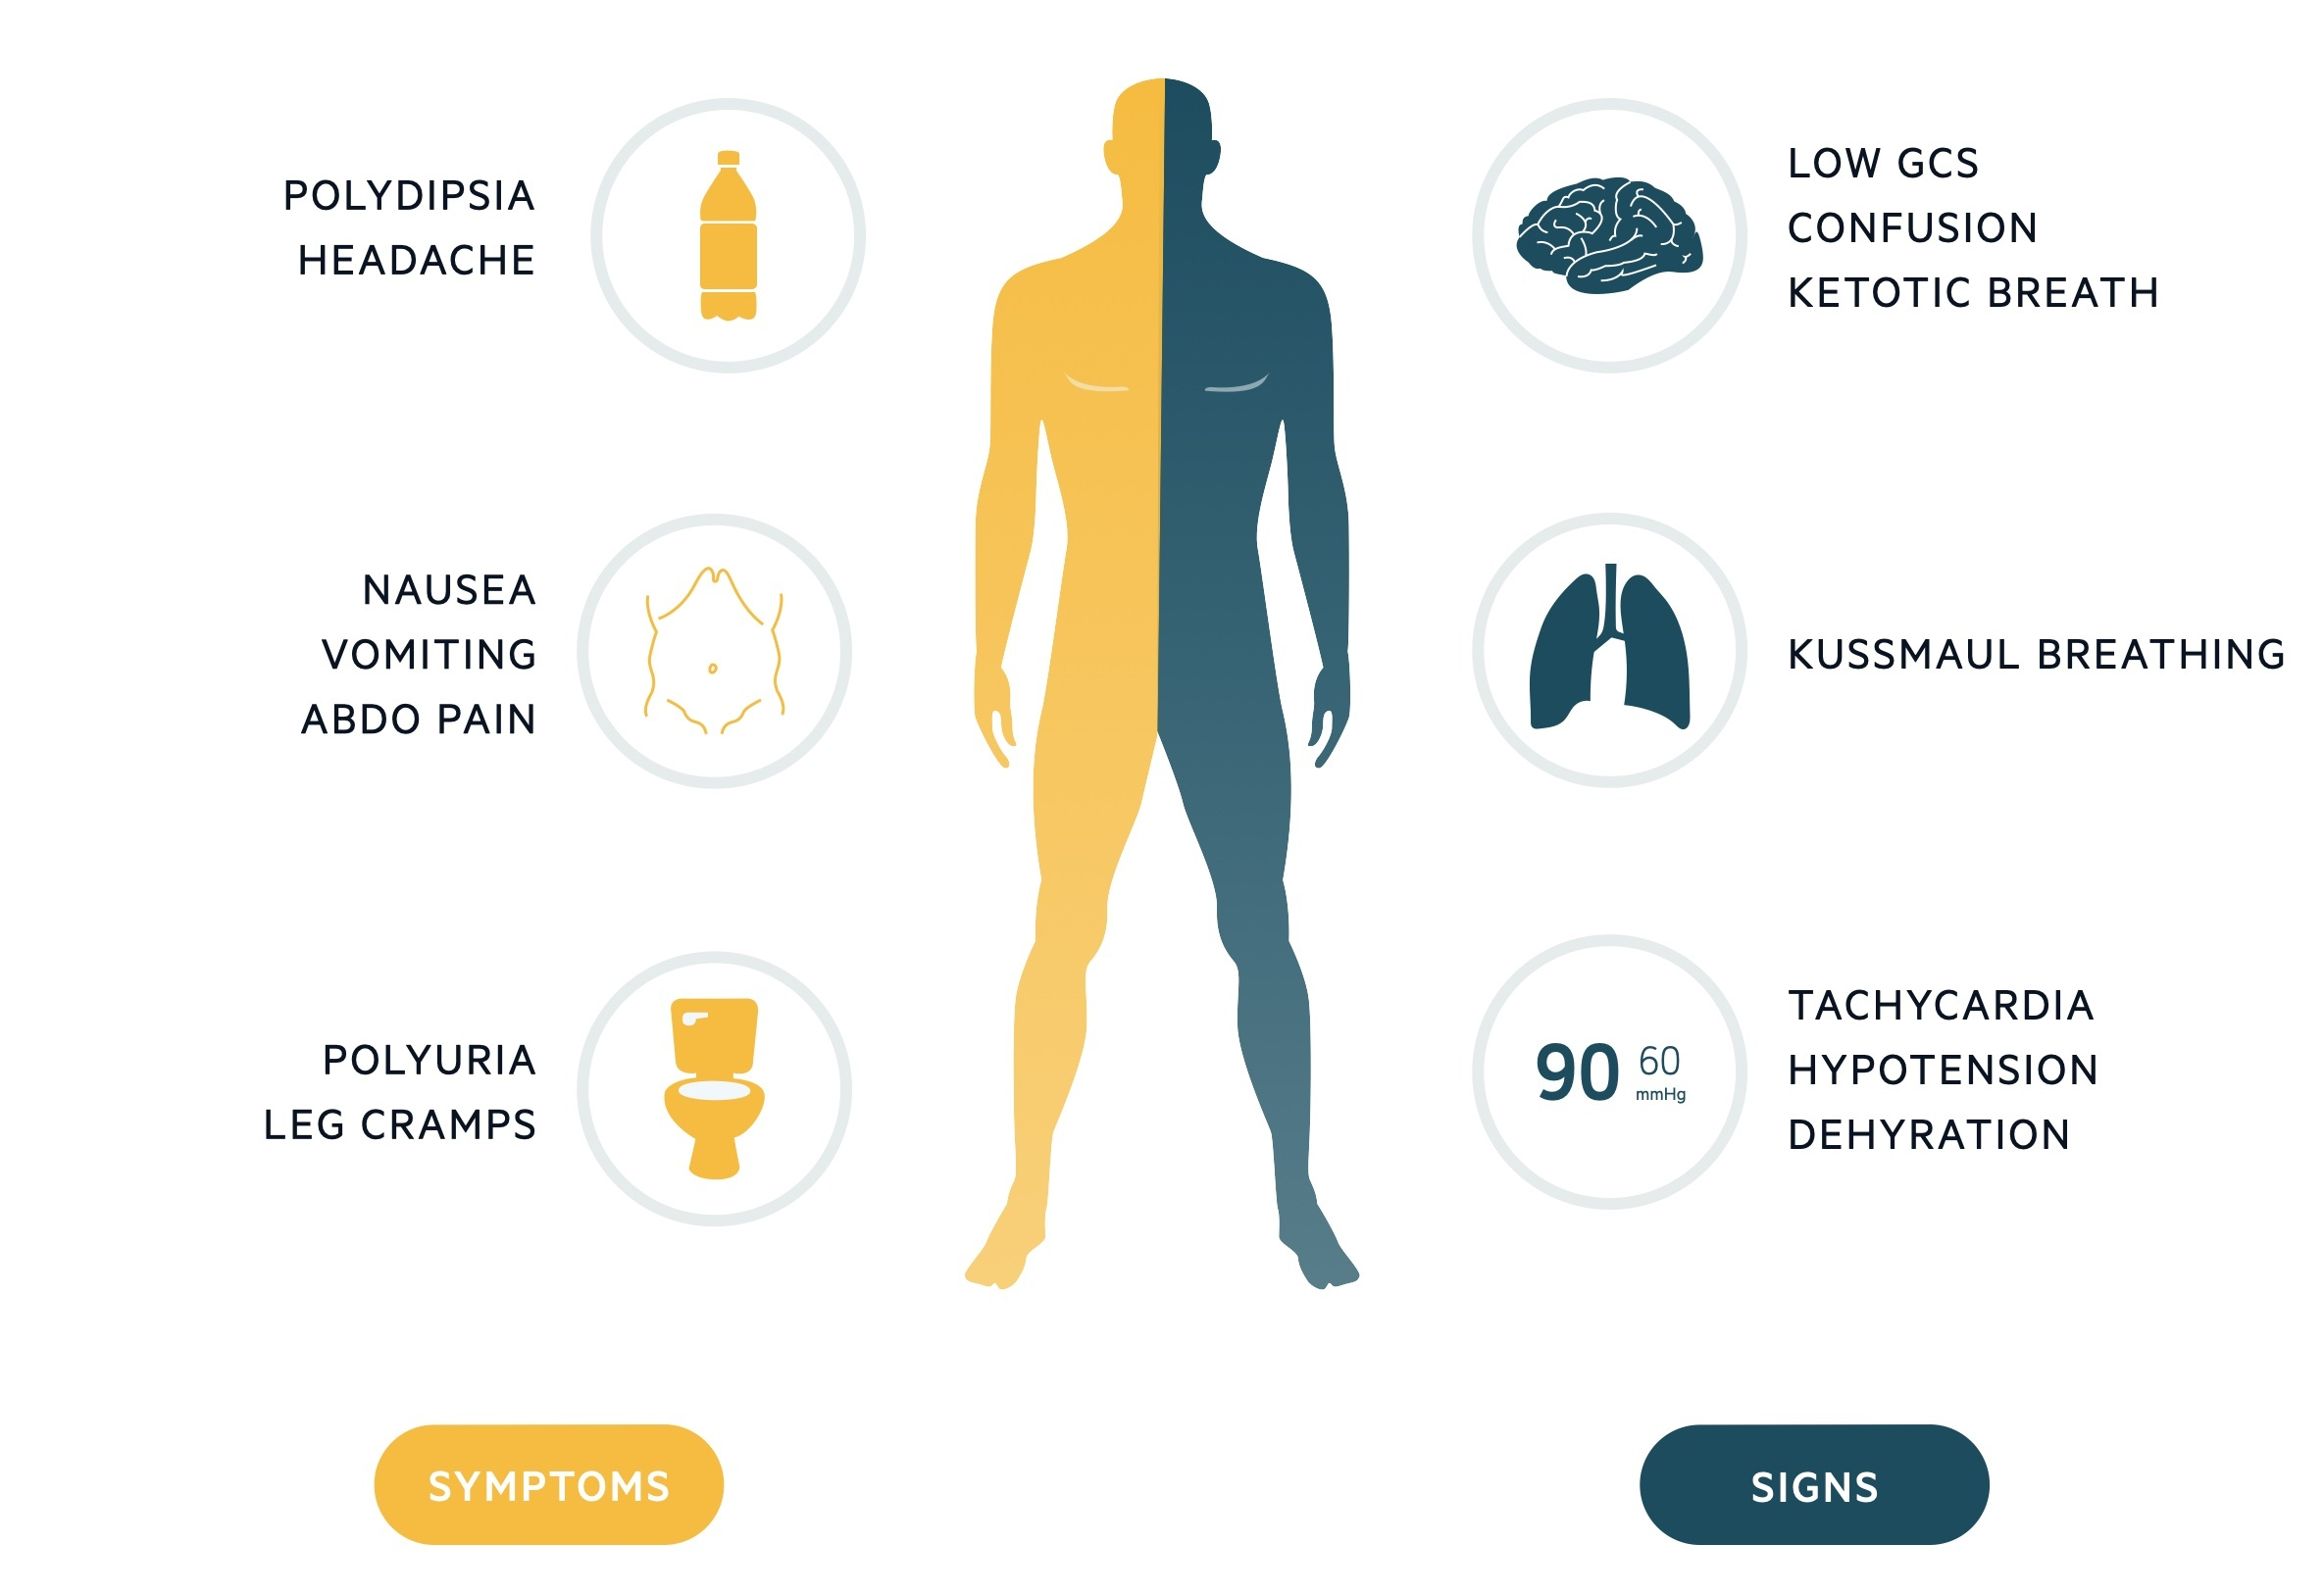 Clinical features of DKA